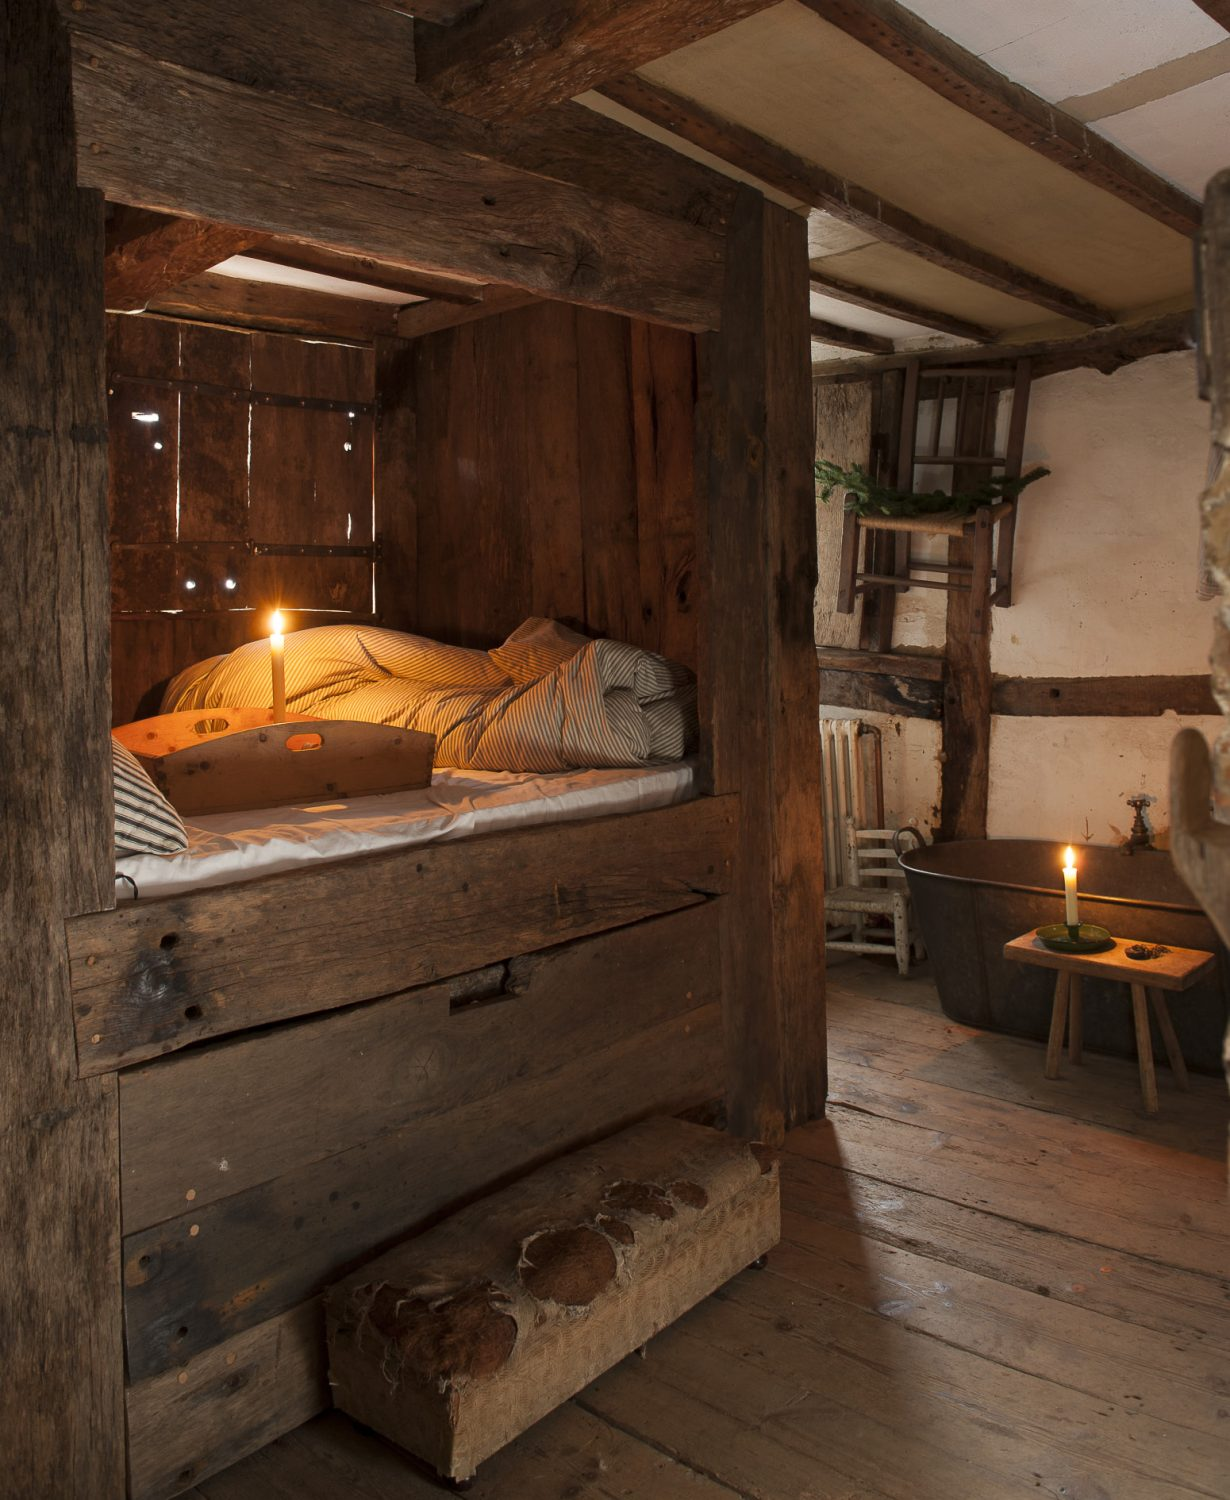 The main bedroom, with its Tudor 'en suite' is home to a raised bed enclosed by wood panelling and shutters